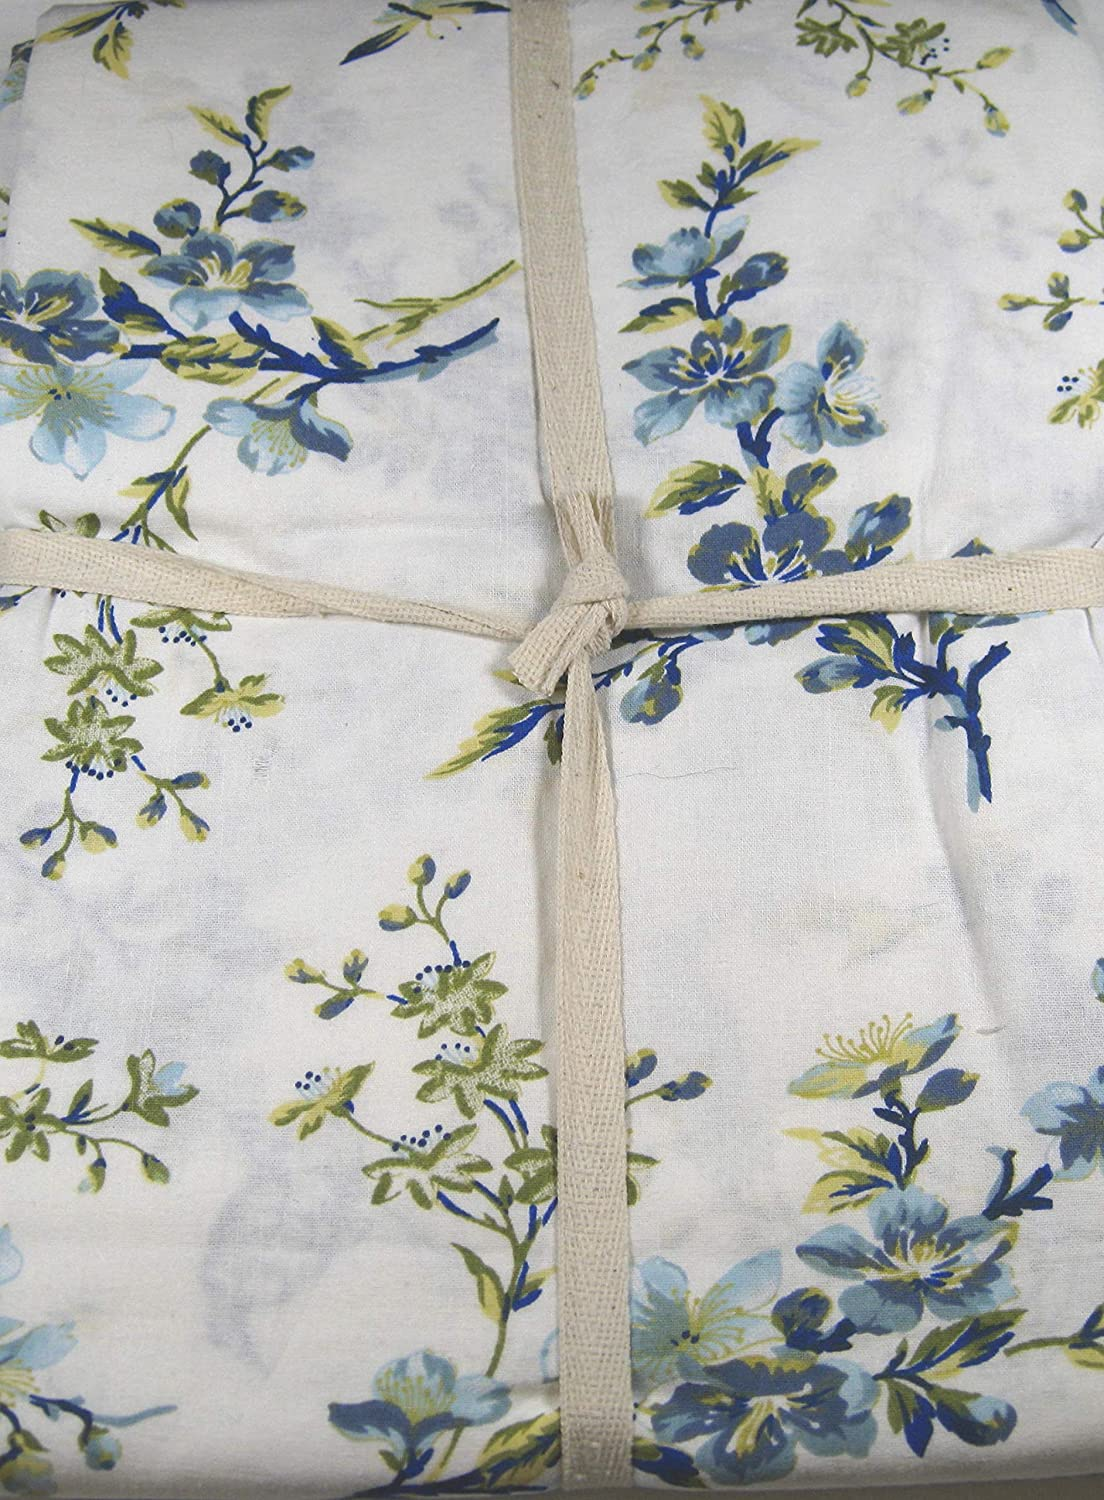 April Cornell Floral Tablecloth with Birds and Butterflies 60 x 84 100/% Cotton Multi Color on Off White